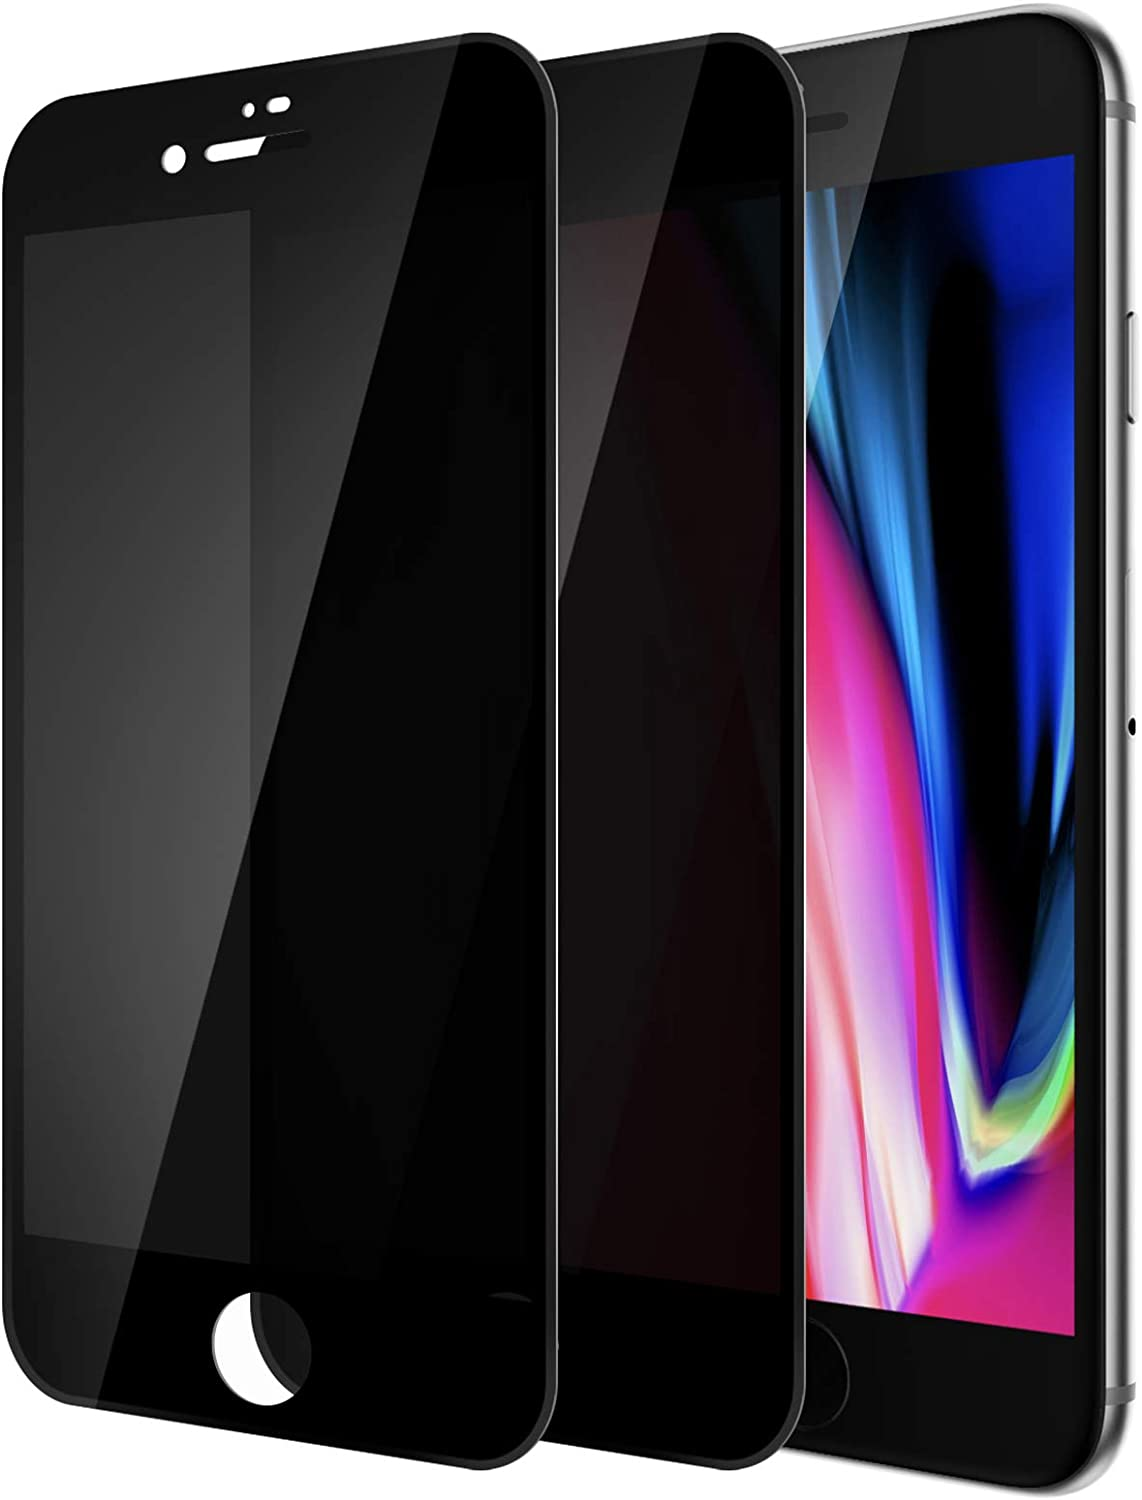 [2Pack] Tensea Compatible Apple iPhone 8 Plus and iPhone 7 Plus Privacy Screen Protector, Anti-Spy Tempered Glass Film, 3D Full Coverage Screen Protector for iPhone 8 Plus and 7 Plus, 5.5 inch, 2 Pack (Black)